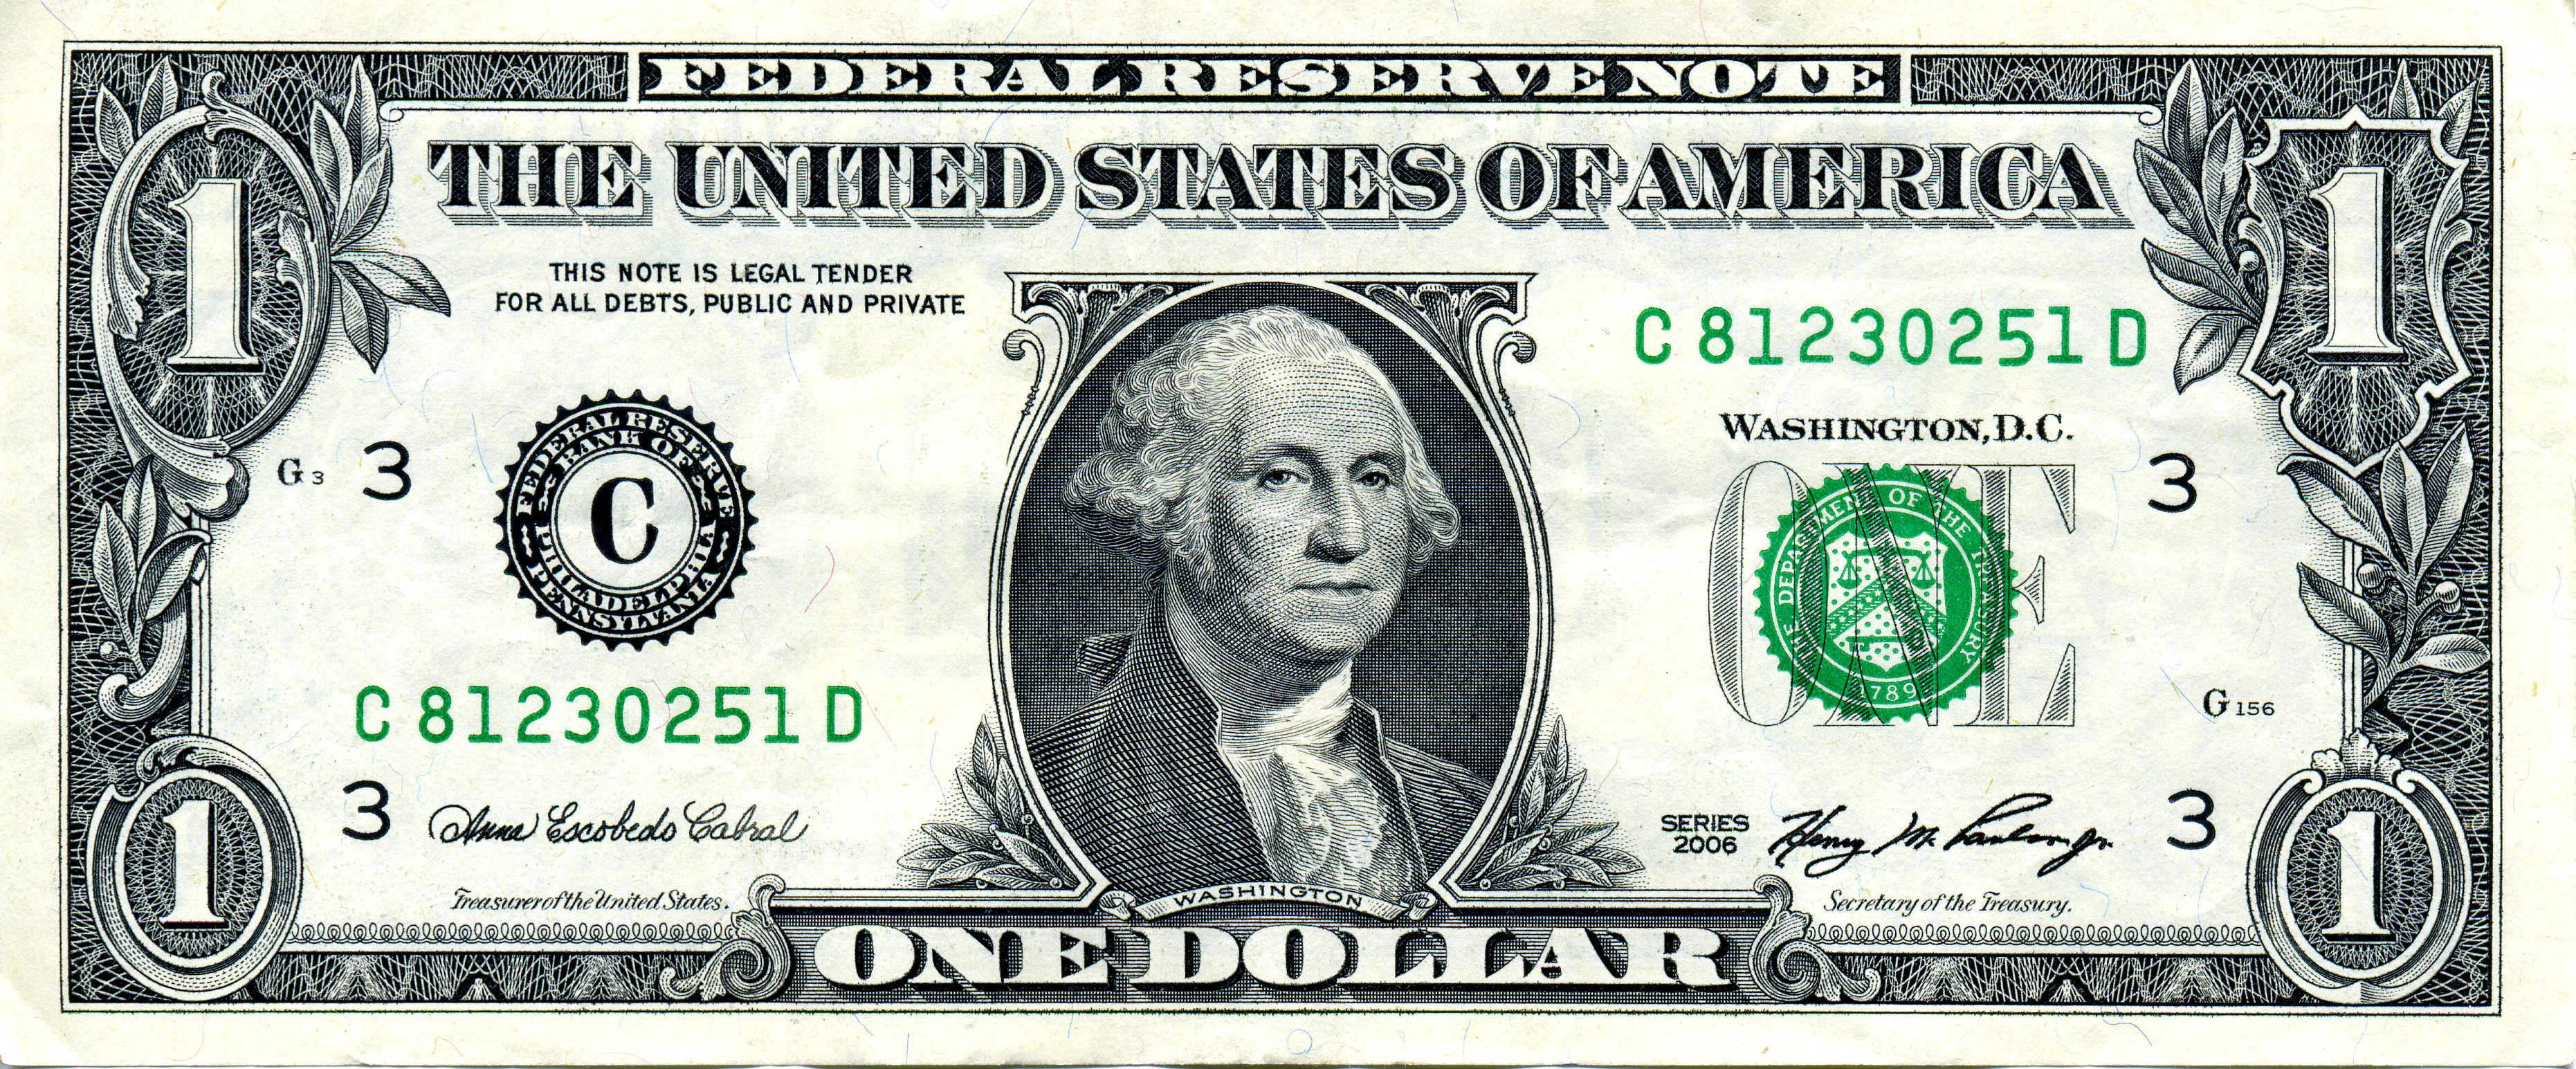 This is a one-dollar bill.